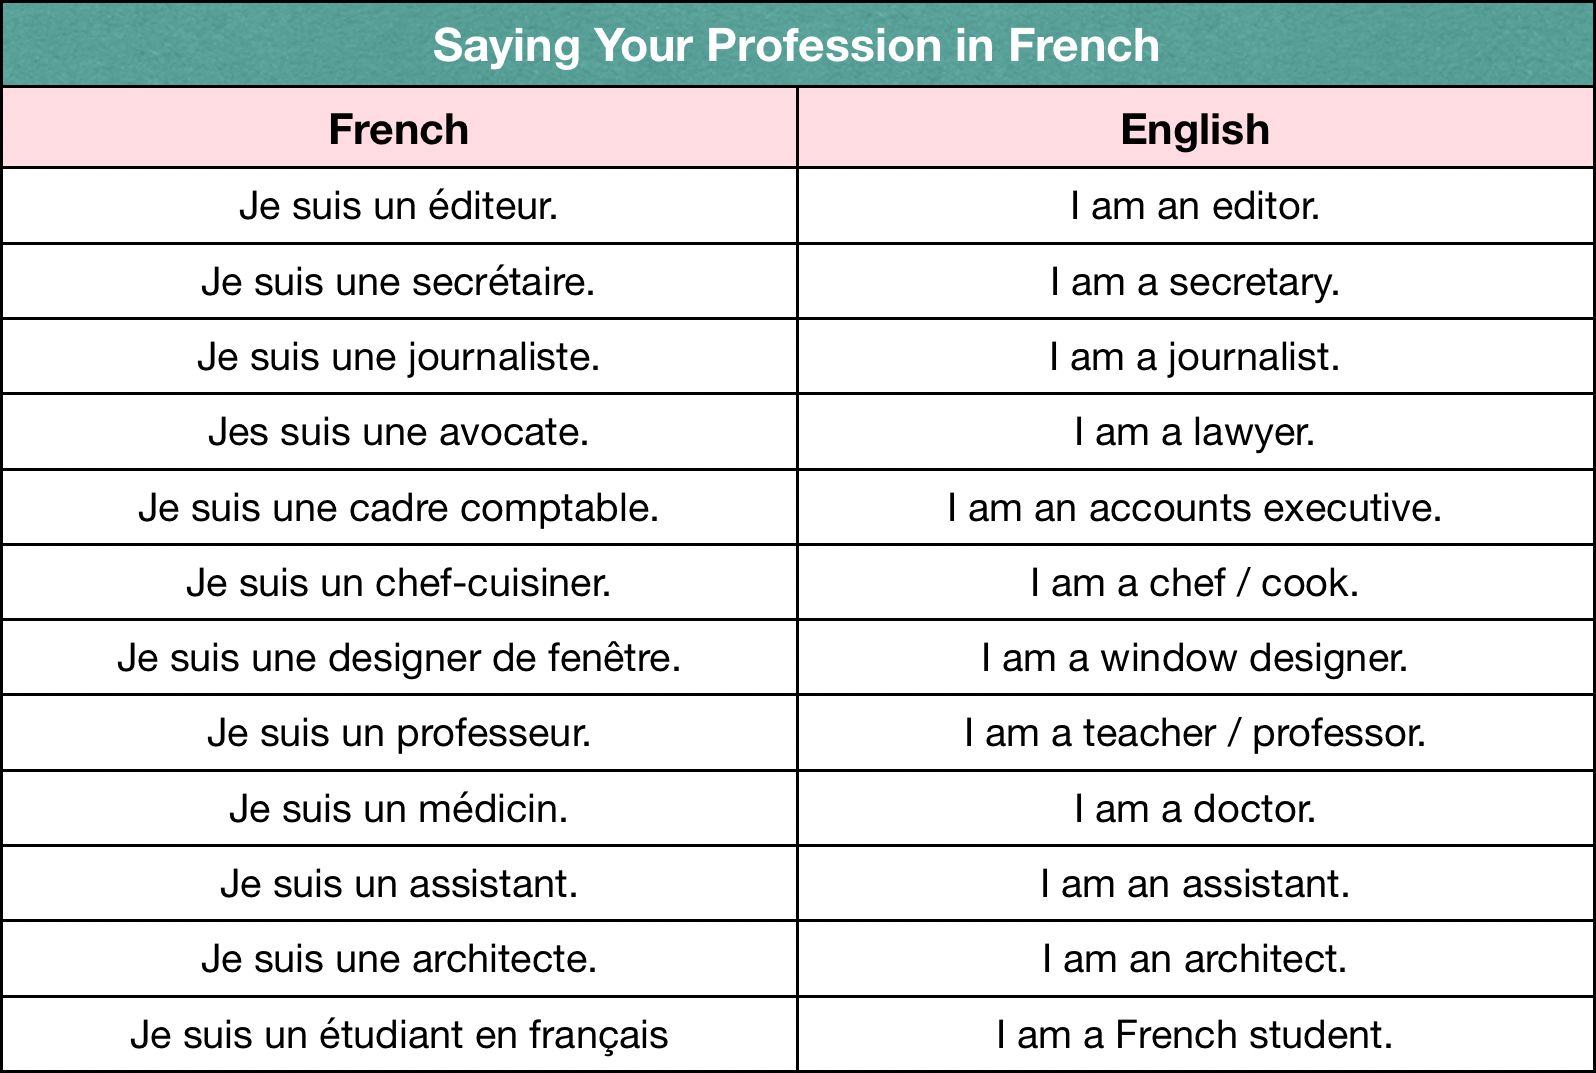 Saying Your Profession in French — Learn French from Scratch